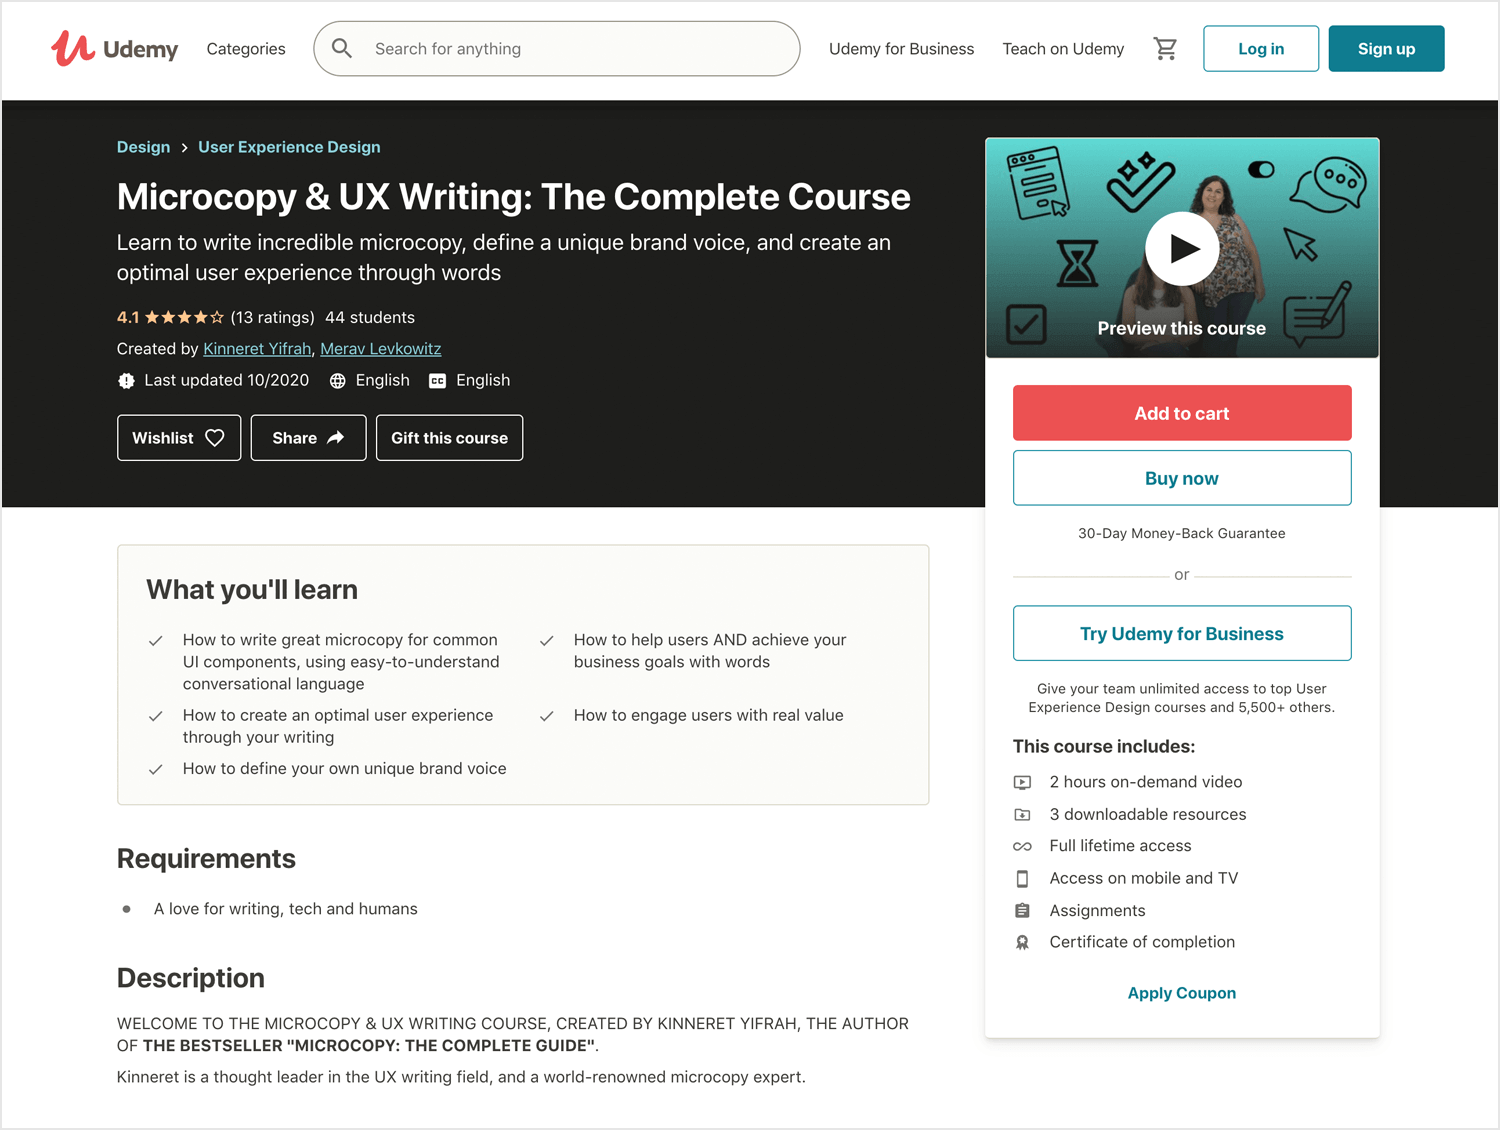 Microcopy & UX Writing course